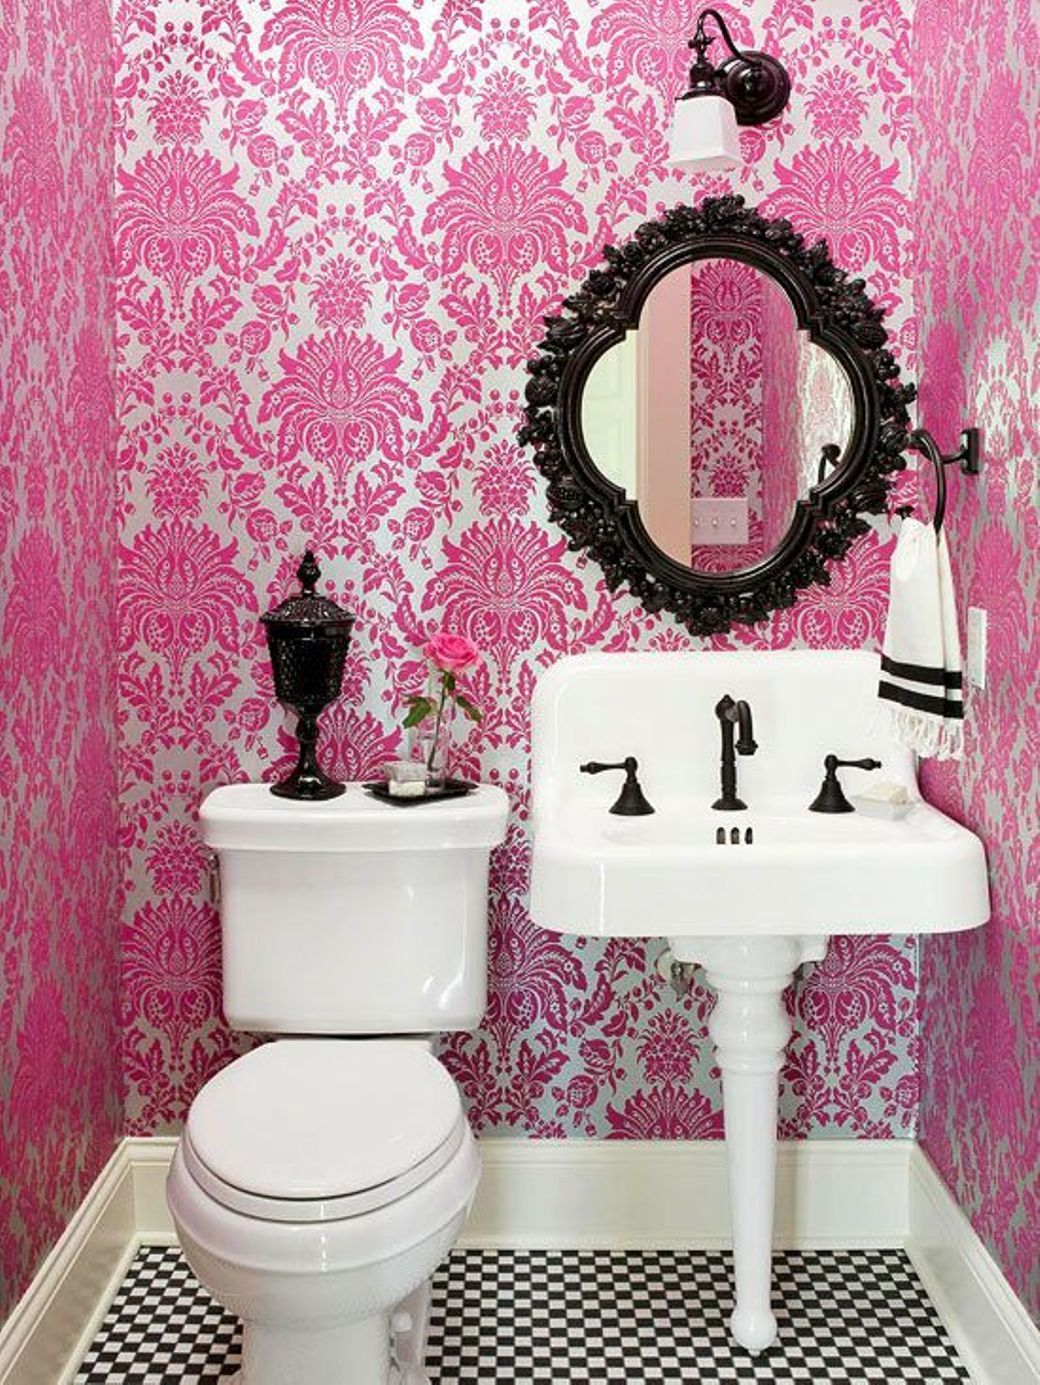 Bathroom , Small Bathroom Decorating Ideas : Great Small Bathroom Ideas  With Graphic Pink Wallpaper And Small Black Oval Ornate Mirror Over  Pedestal Sink